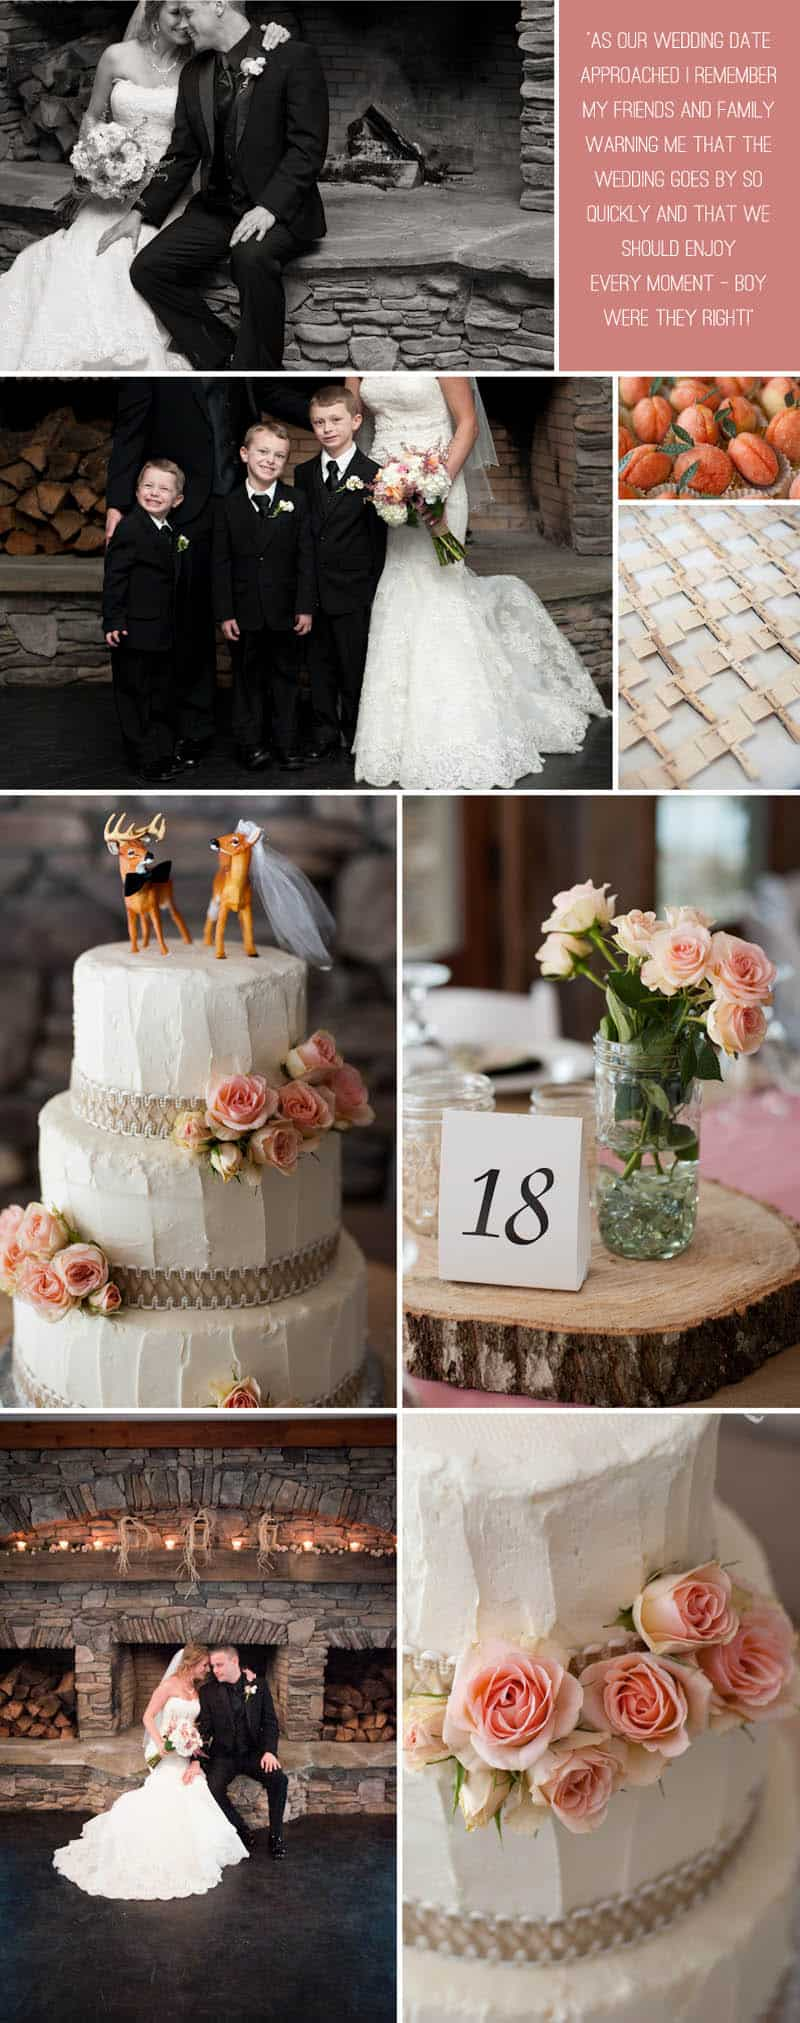 A Rustic Winter Wedding 5